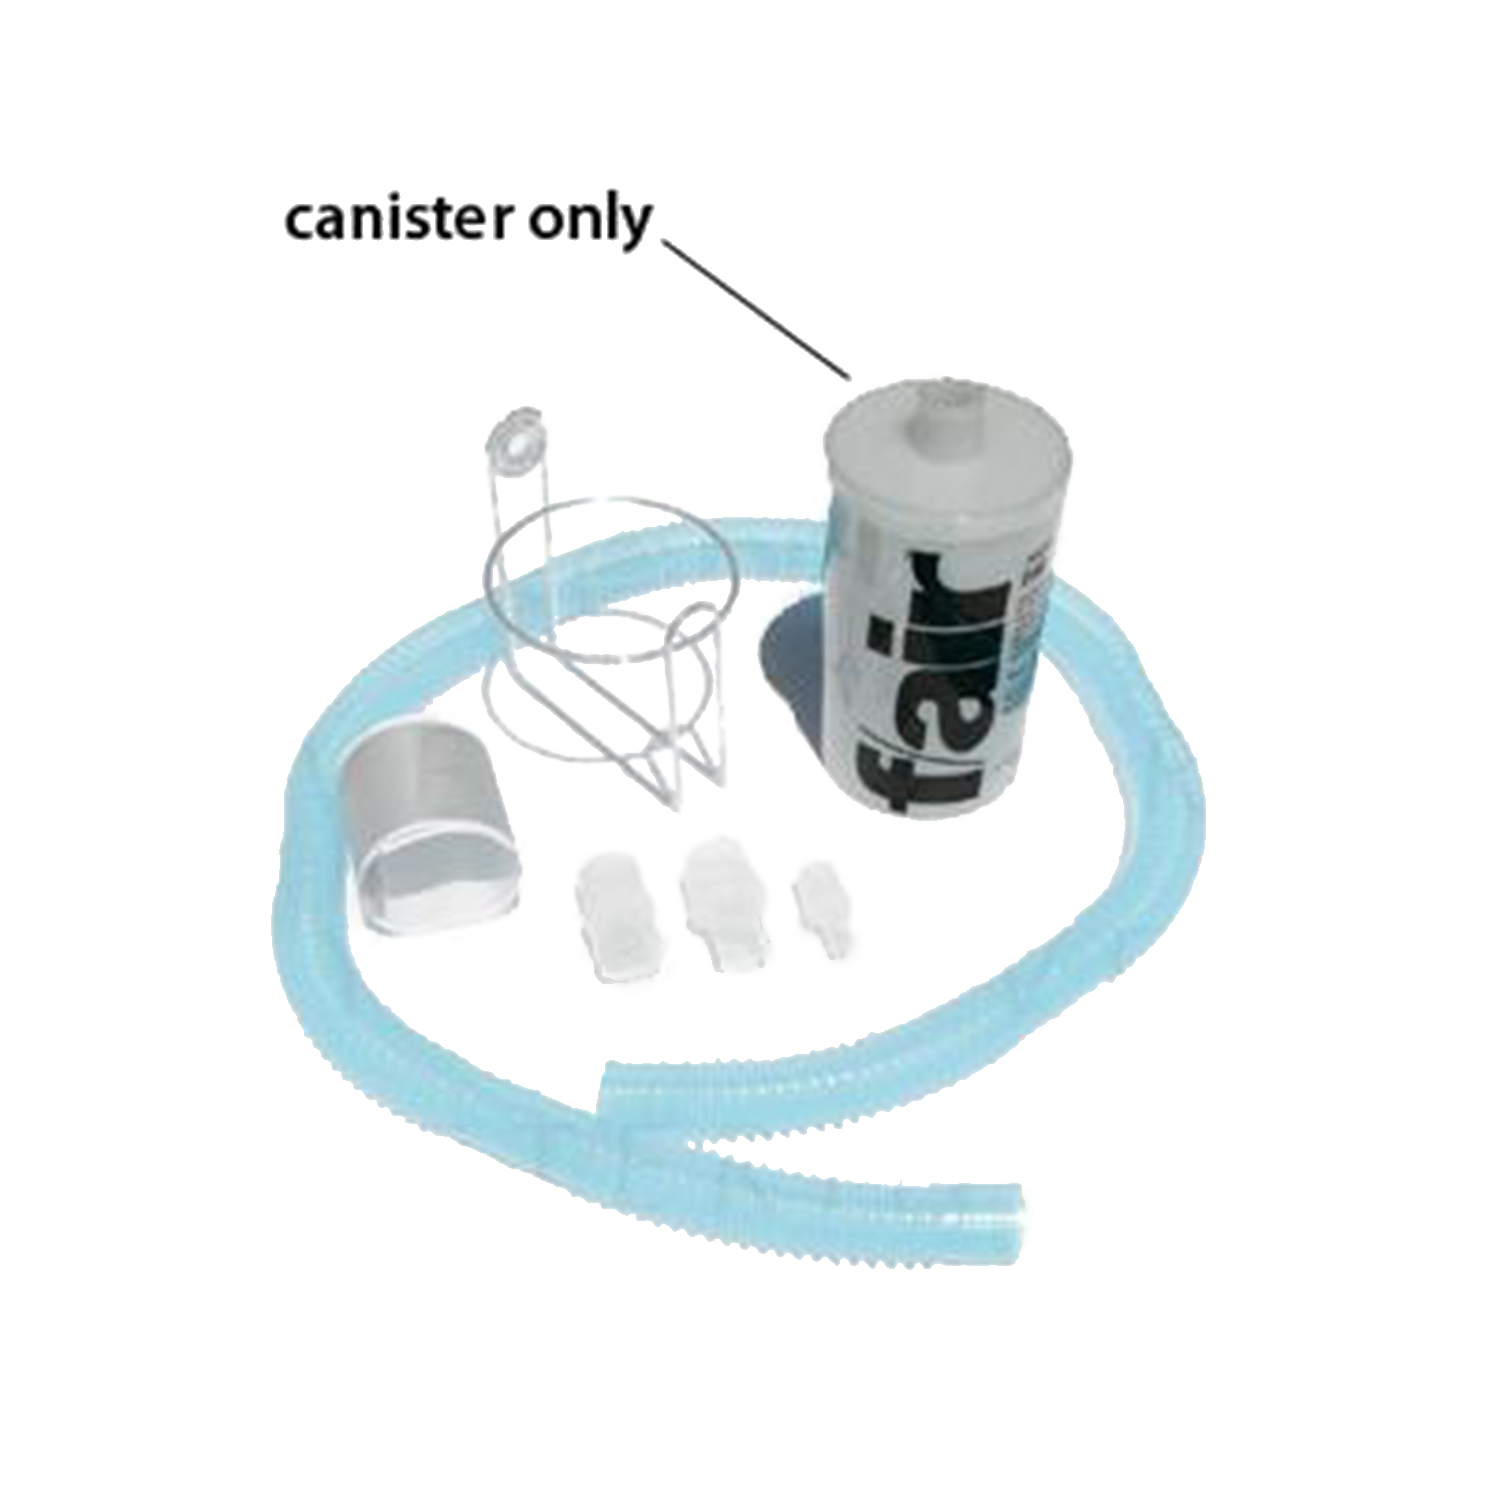 F-Air Canister (canister only)